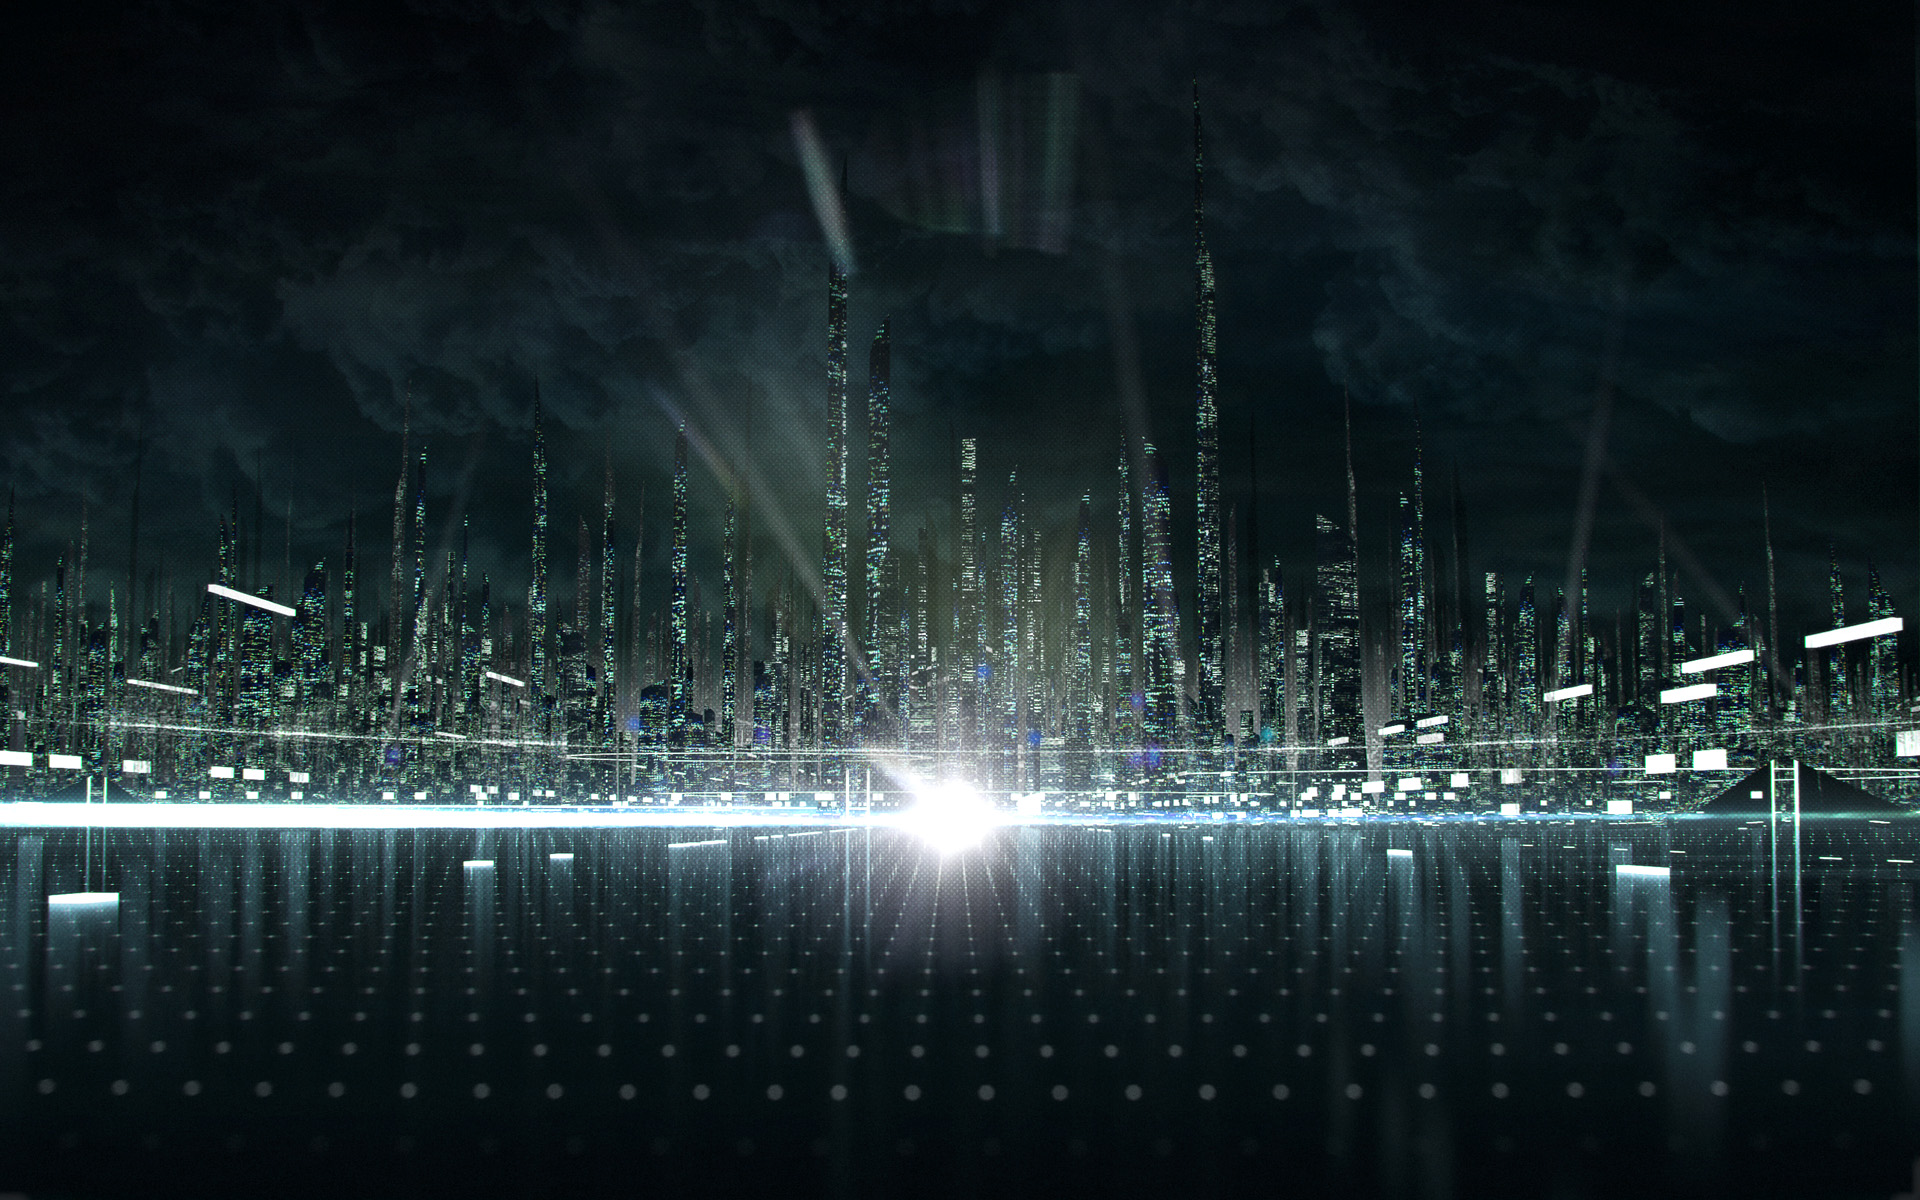 Tron City from Disney   s Tron  Legacy Movie wallpaper - Click picture    Future City Wallpaper 1080p